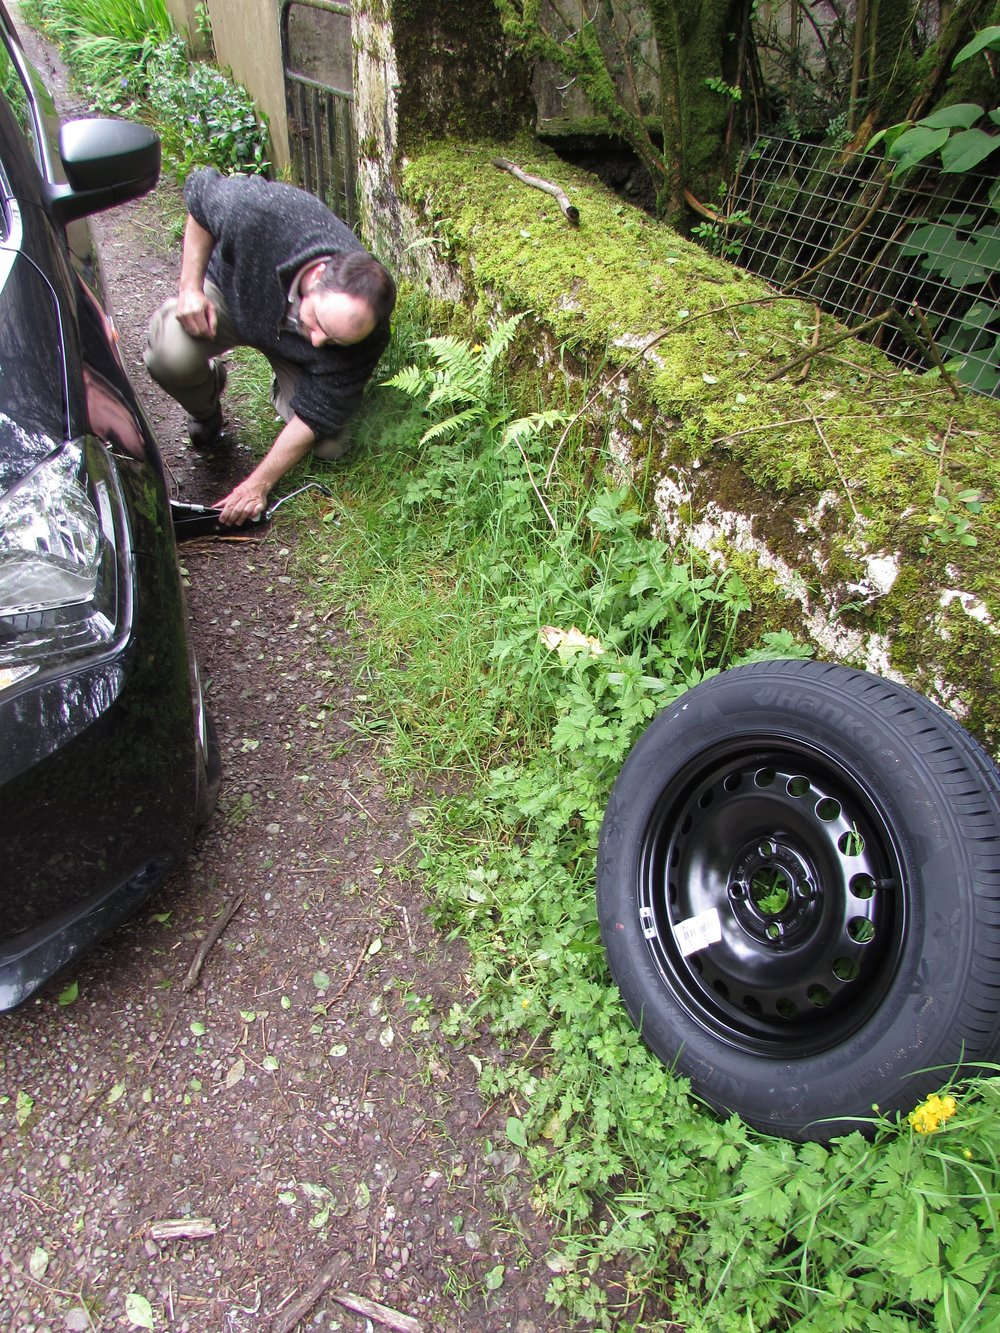 A flat tire can slow you down, but it doesn't have to derail a whole trip together.